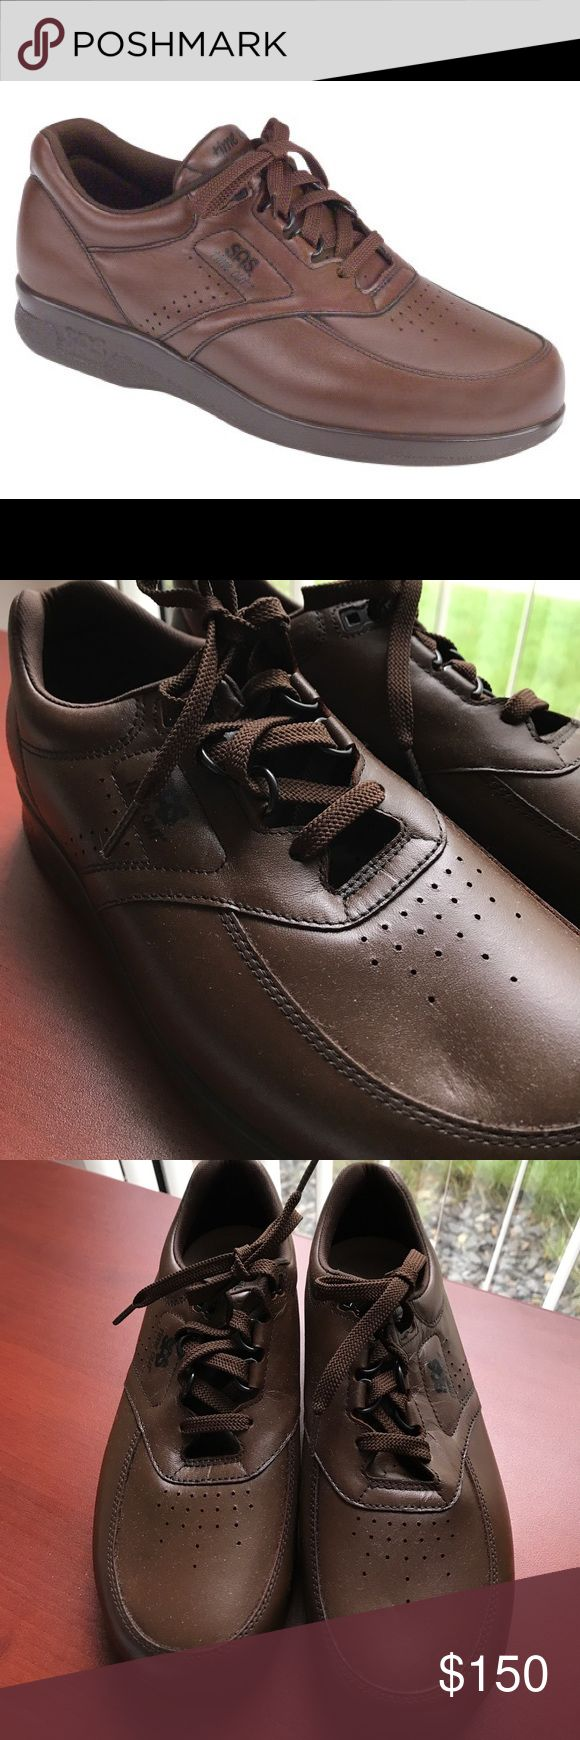 Men's SAS Time Out Shoes Size 8.5 NWOT, selling for my dad